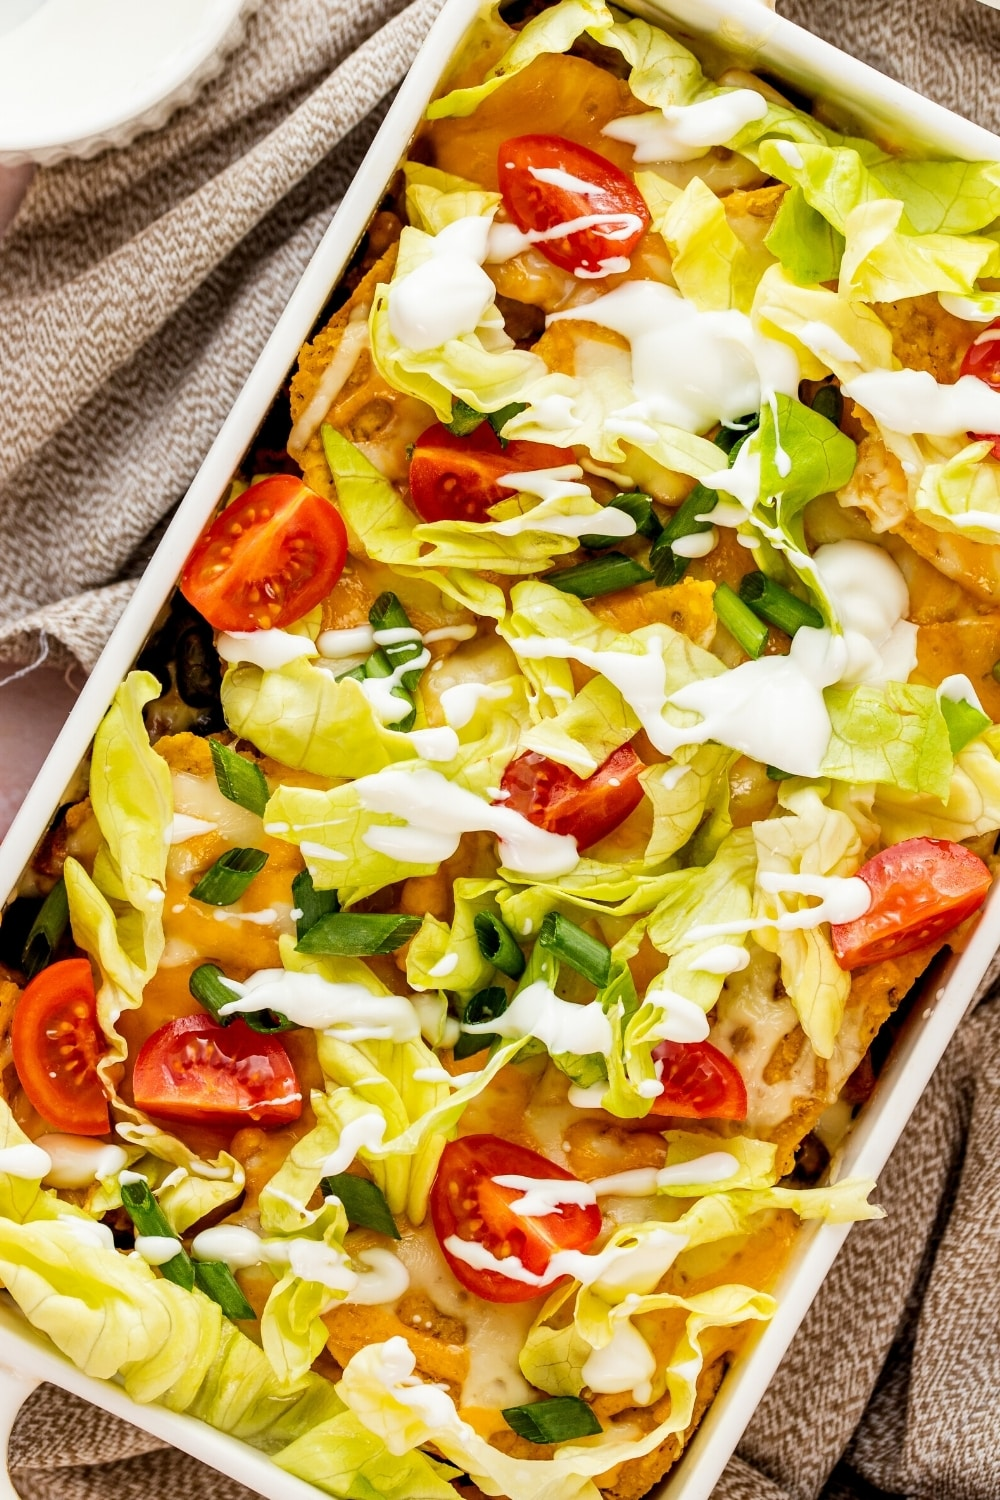 A white casserole dish filled with walking taco casserole.